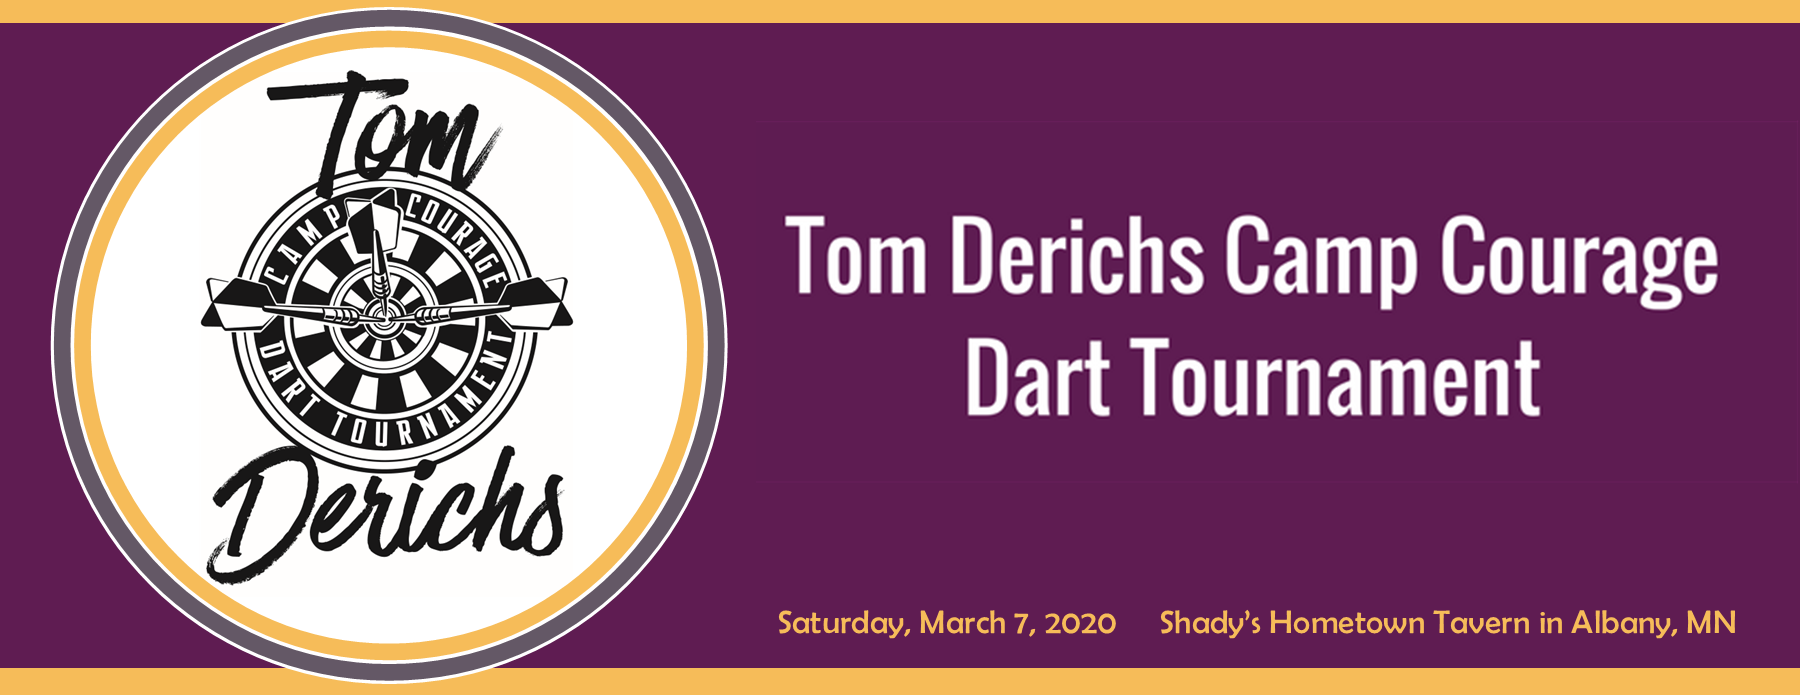 2020 Tom Derichs Camp Courage Dart Tourney